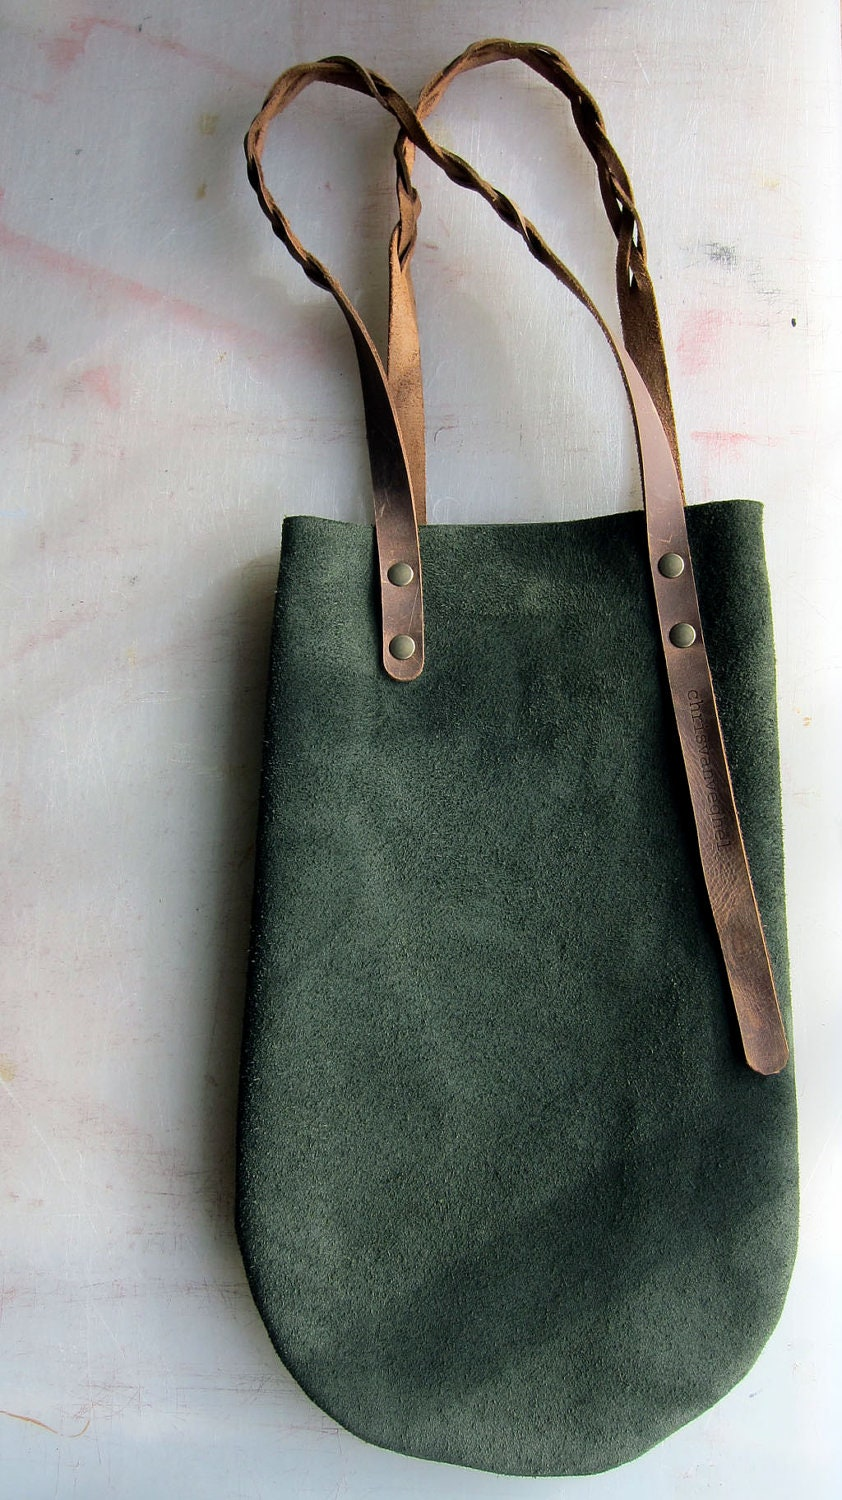 ON SALE: little green leather bag with brown leather braided handles - chrisvanveghel